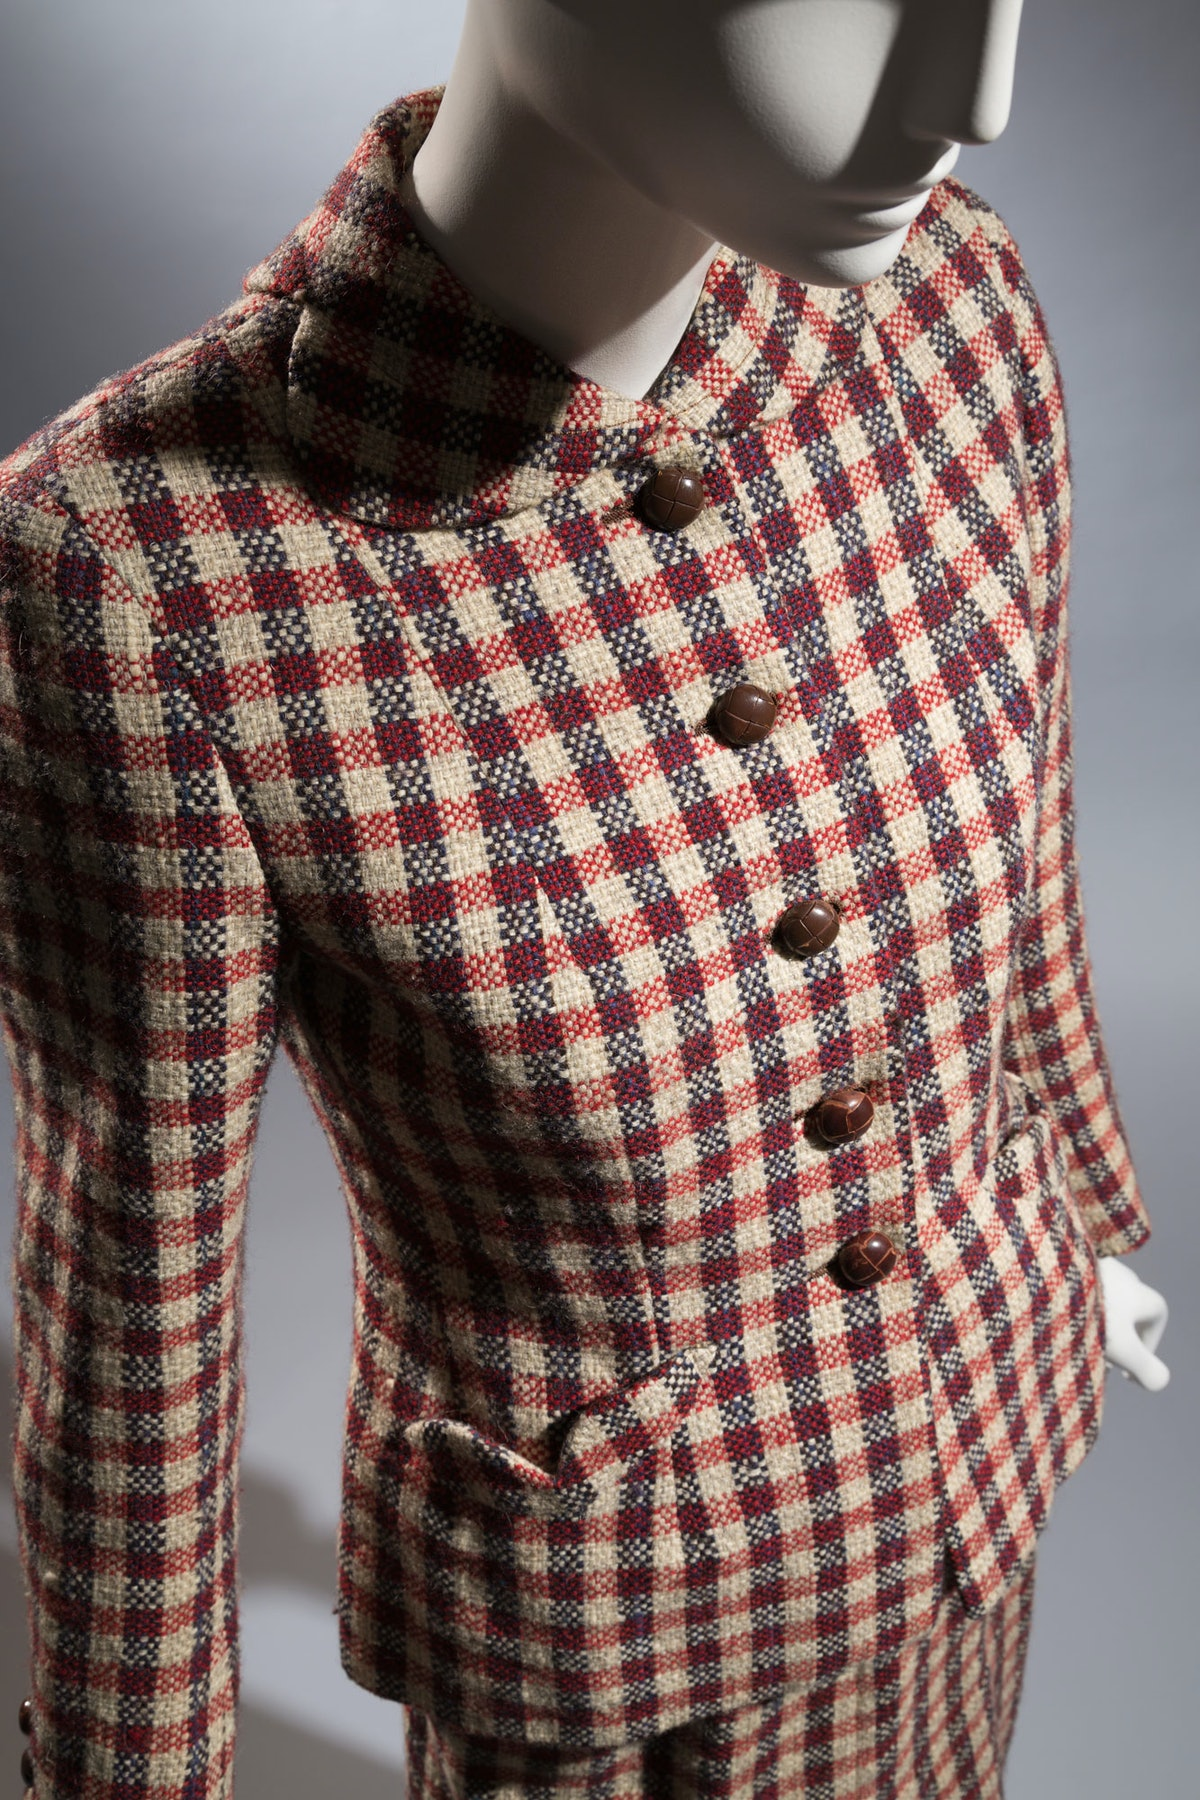 """Aimee de Hereen suit    """"This was made by Knize, the Viennese tailors who dressed the Habsburgs, for..."""